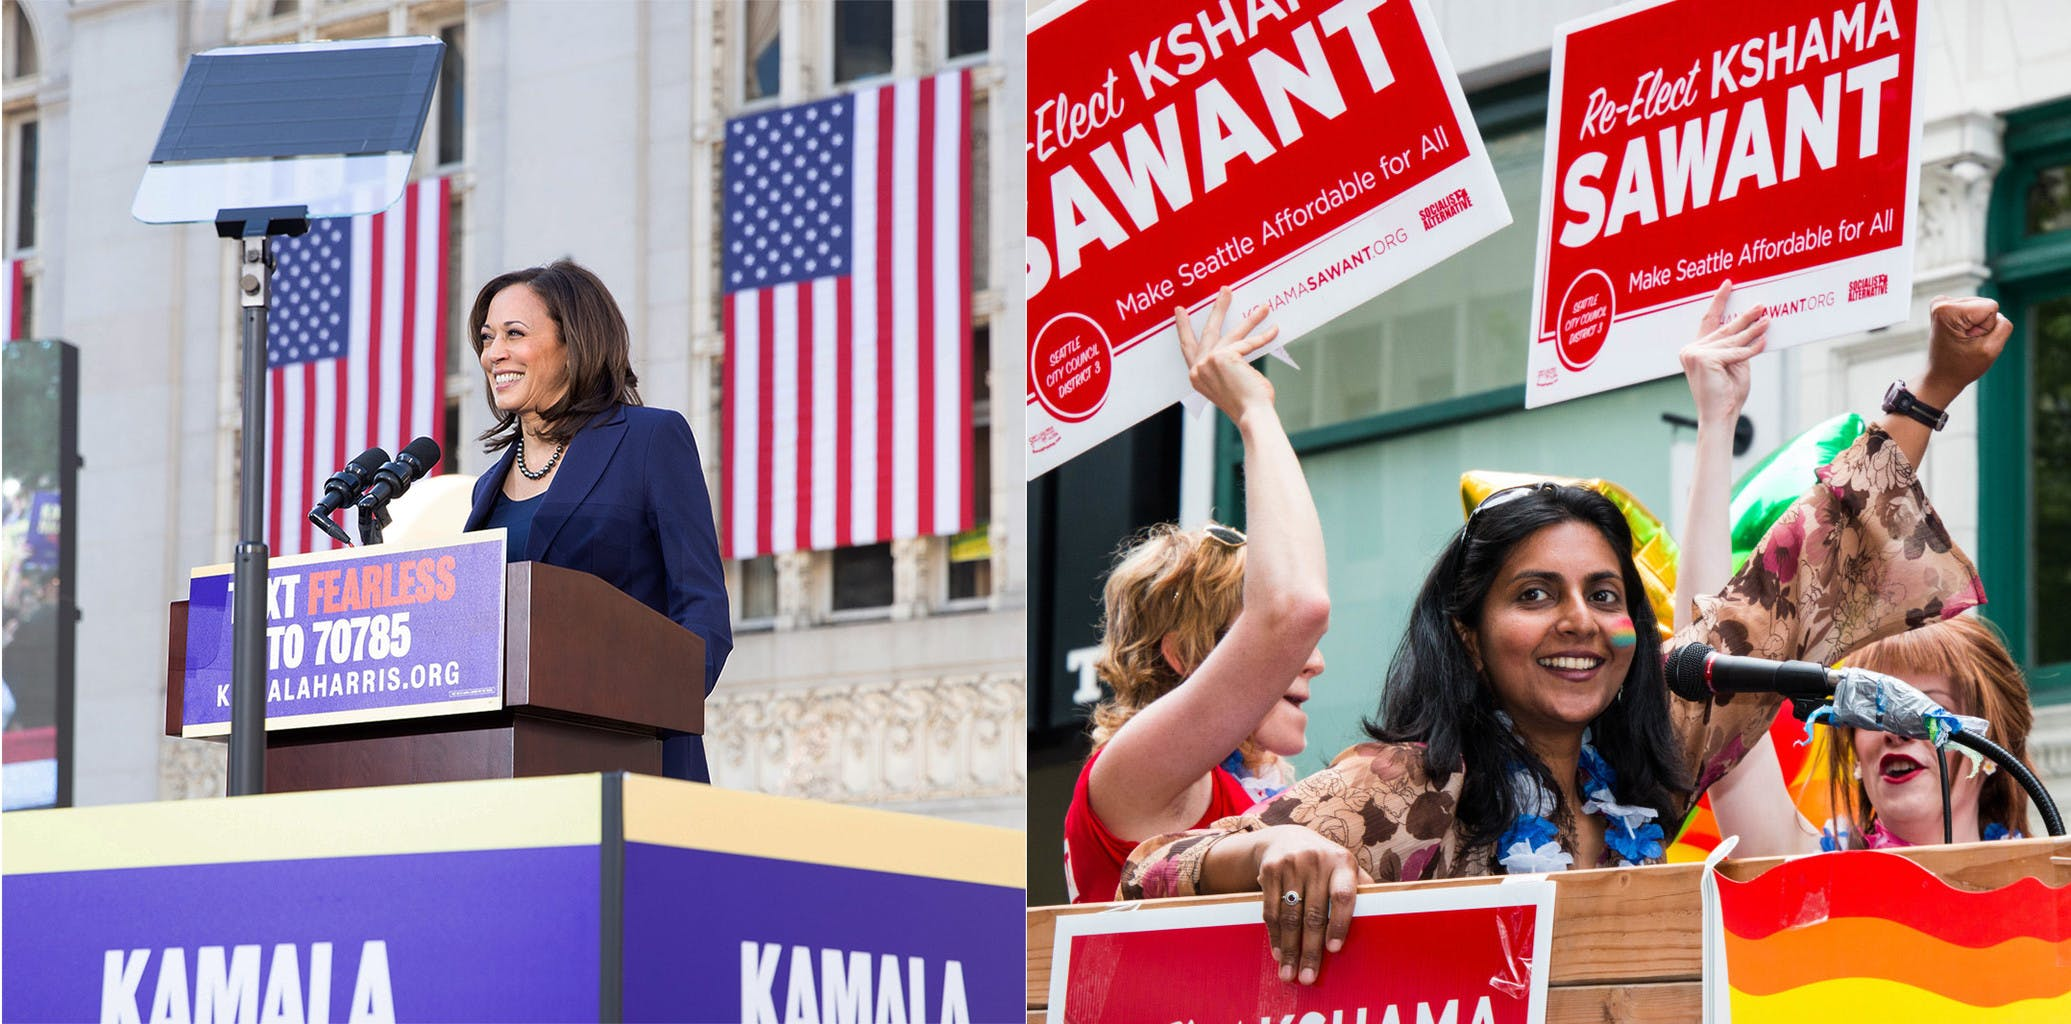 Kamala Harris and Kshama Sawant